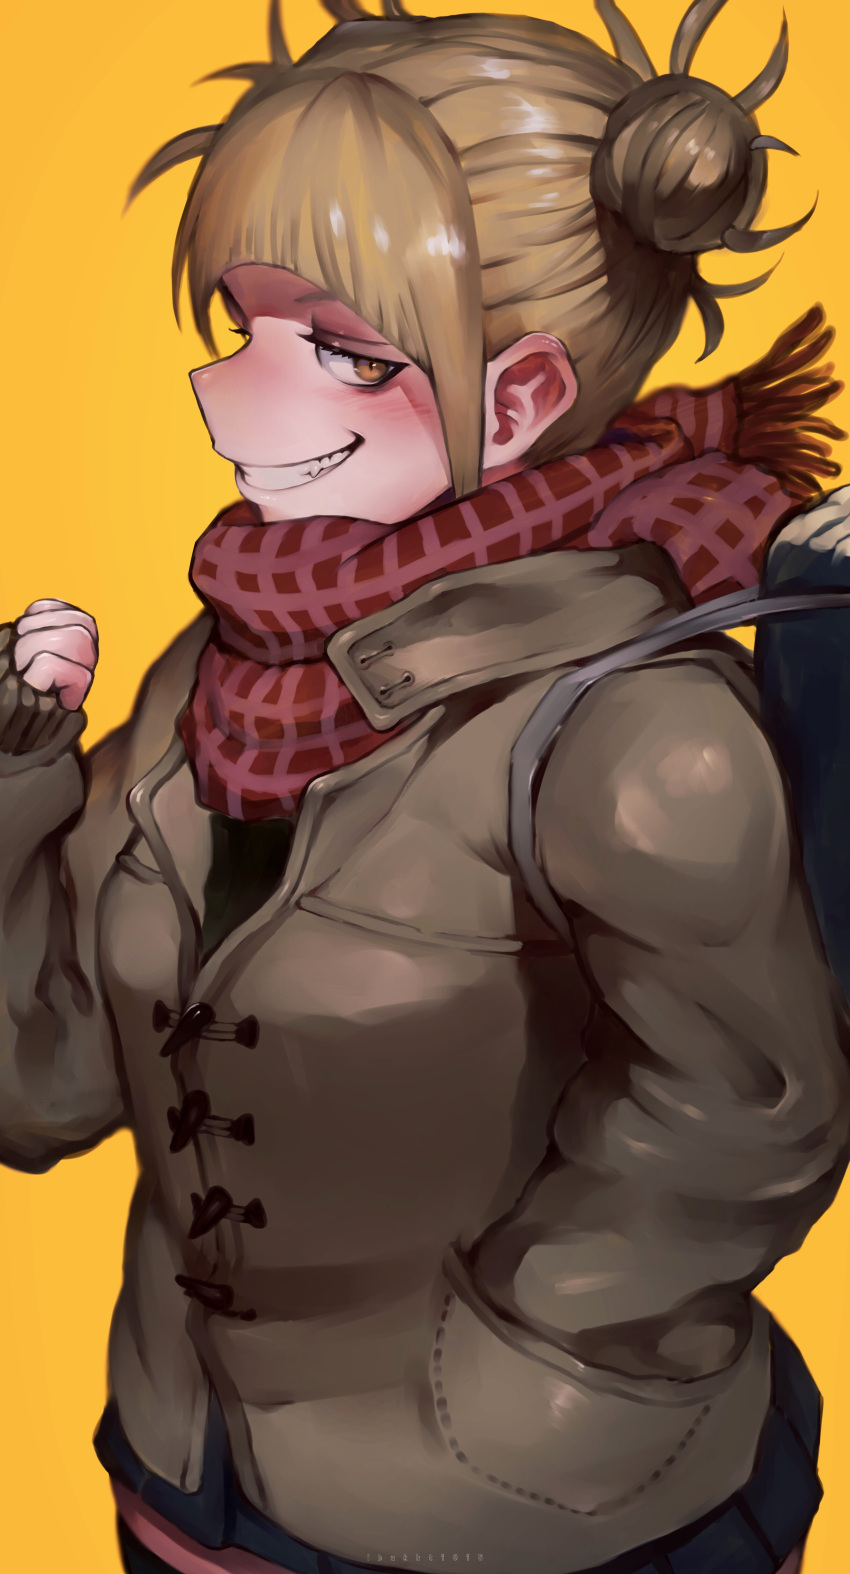 1girl absurdres bag bags_under_eyes bangs black_legwear blonde_hair blue_skirt boku_no_hero_academia clenched_hand coat densen_(itoguchi) double_bun evil_grin evil_smile fang grin hair_pulled_back hand_in_pocket highres looking_at_viewer messy_hair plaid plaid_scarf scarf short_hair skirt sleeves_past_wrists smile solo thigh-highs toga_himiko yellow_background yellow_eyes zettai_ryouiki